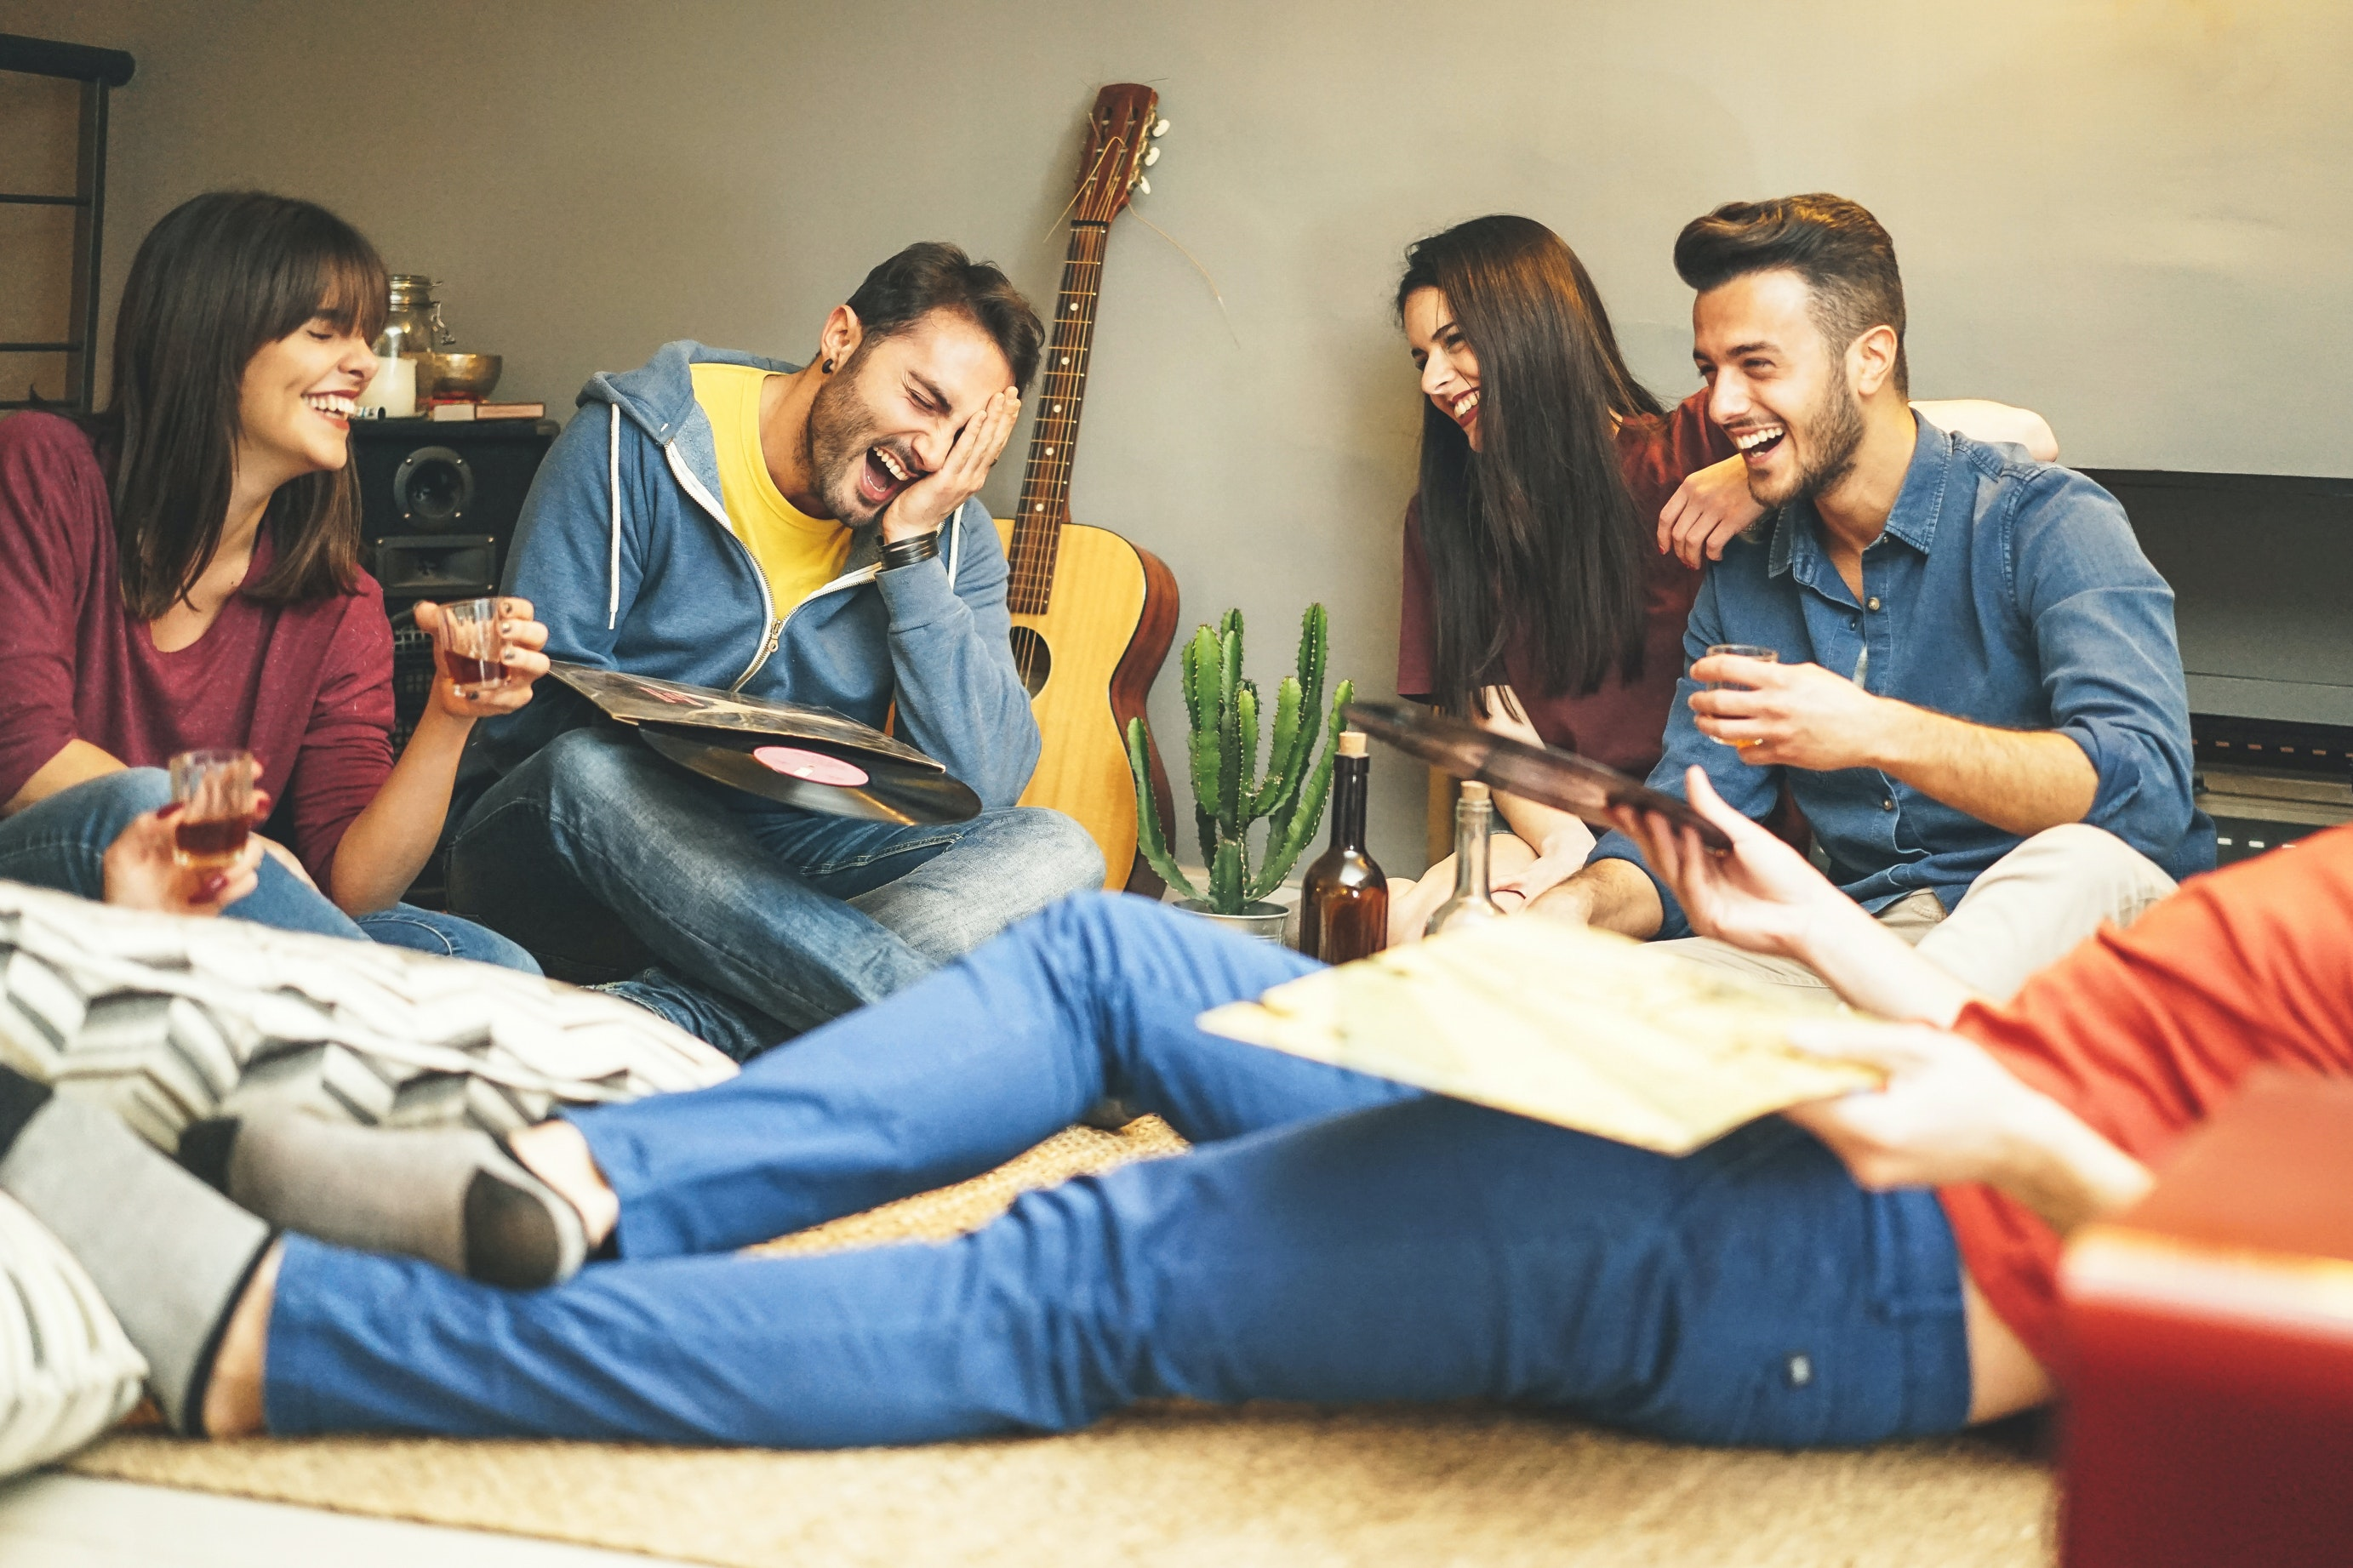 Students using broadband in a shared house